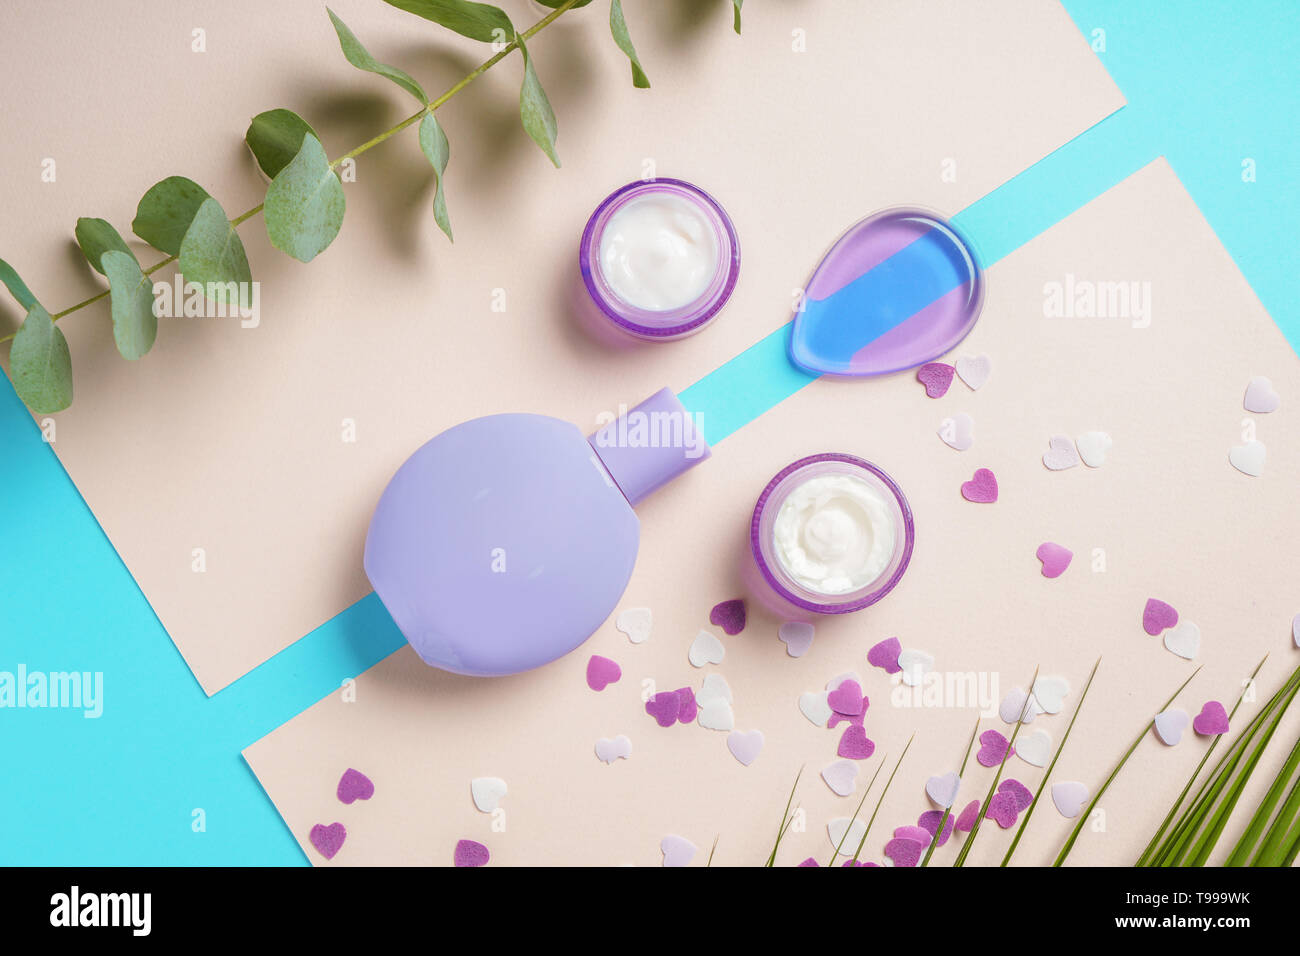 Composition with cosmetics on color background - Stock Image